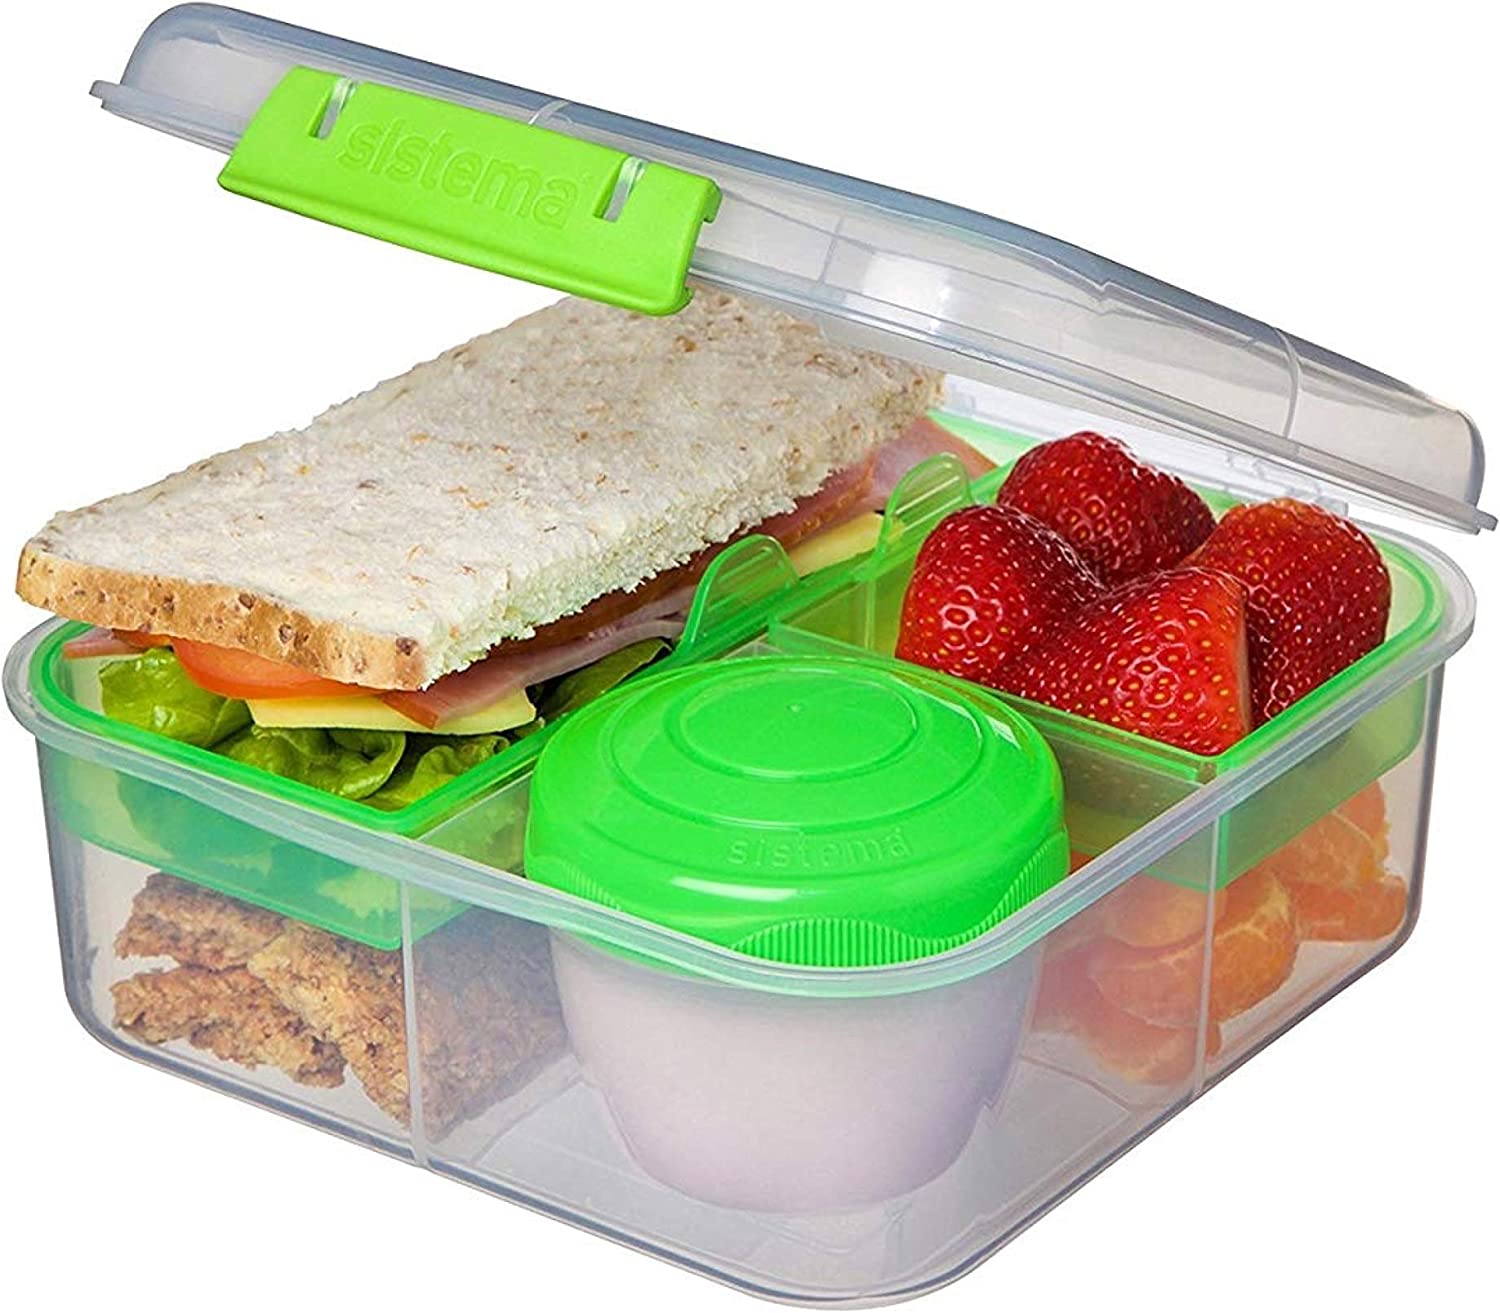 lunch containers for teens